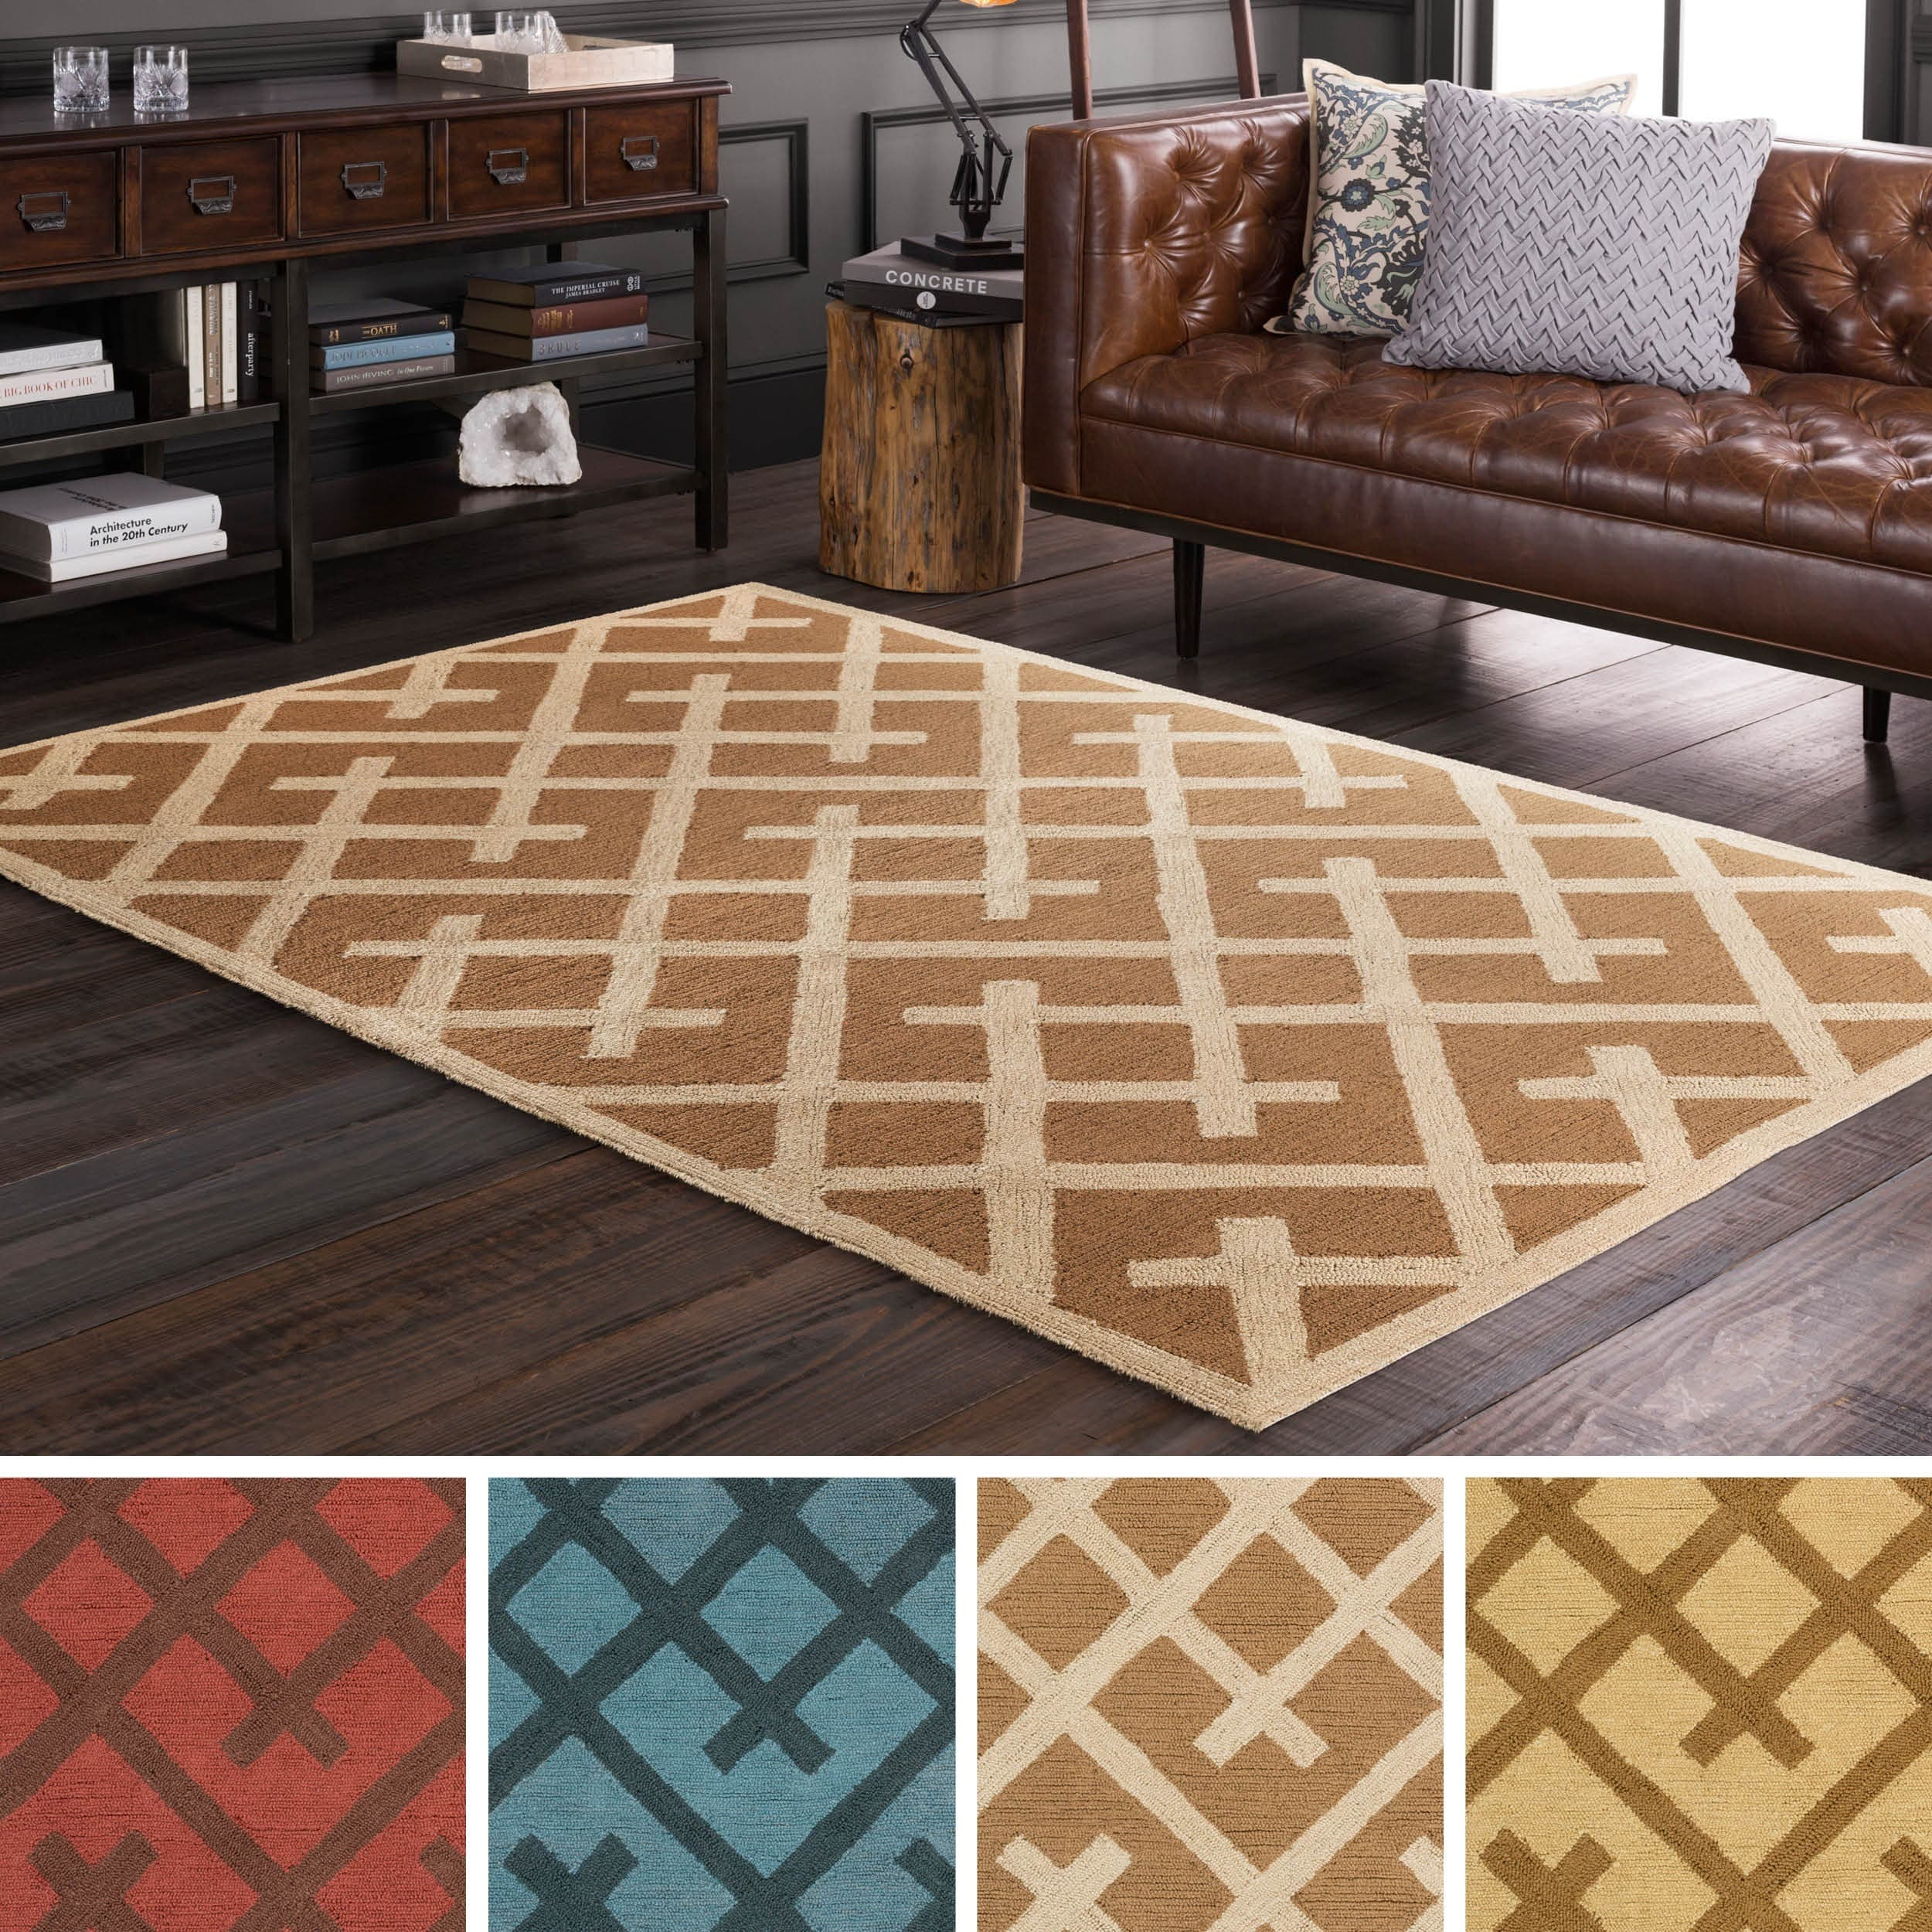 Ferrecci Hand Tufted idiom Jute Rug (5' x 7'6) (Brown/Red...